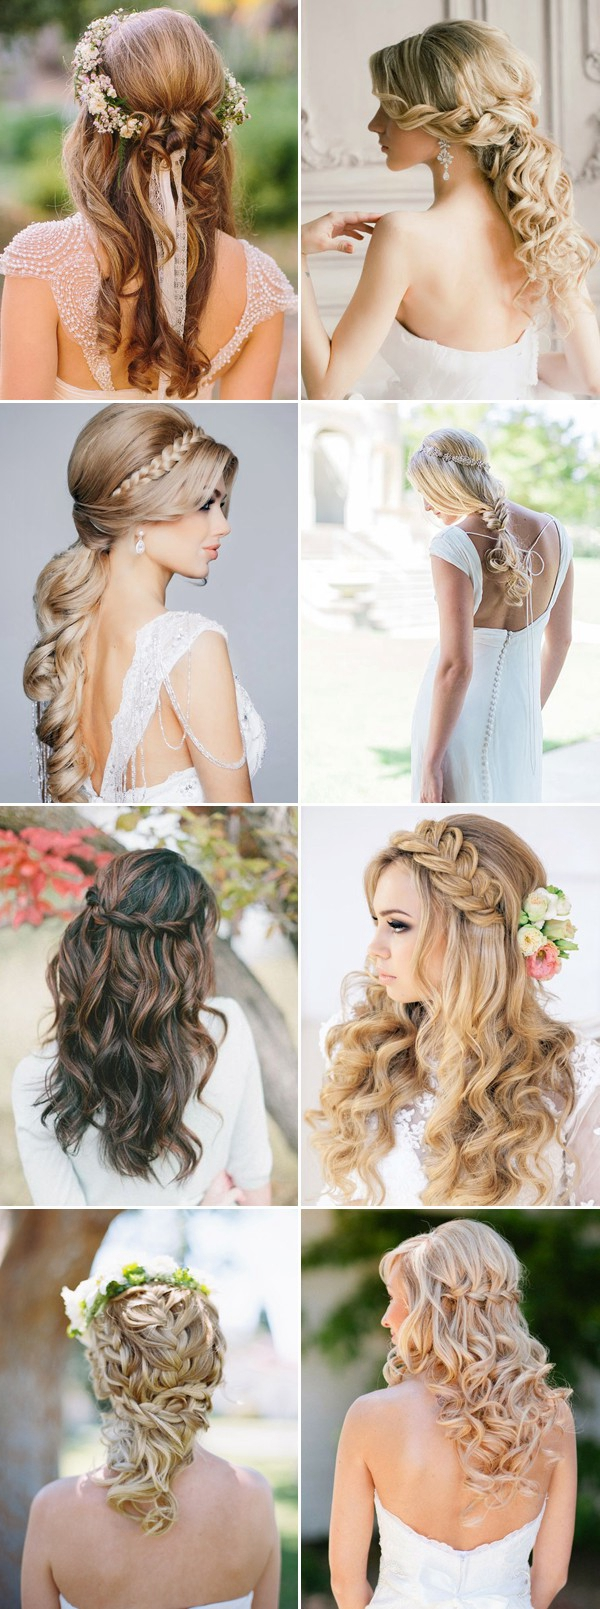 braided-half-up-half-down-wedding-hairstyles-for-long-hair